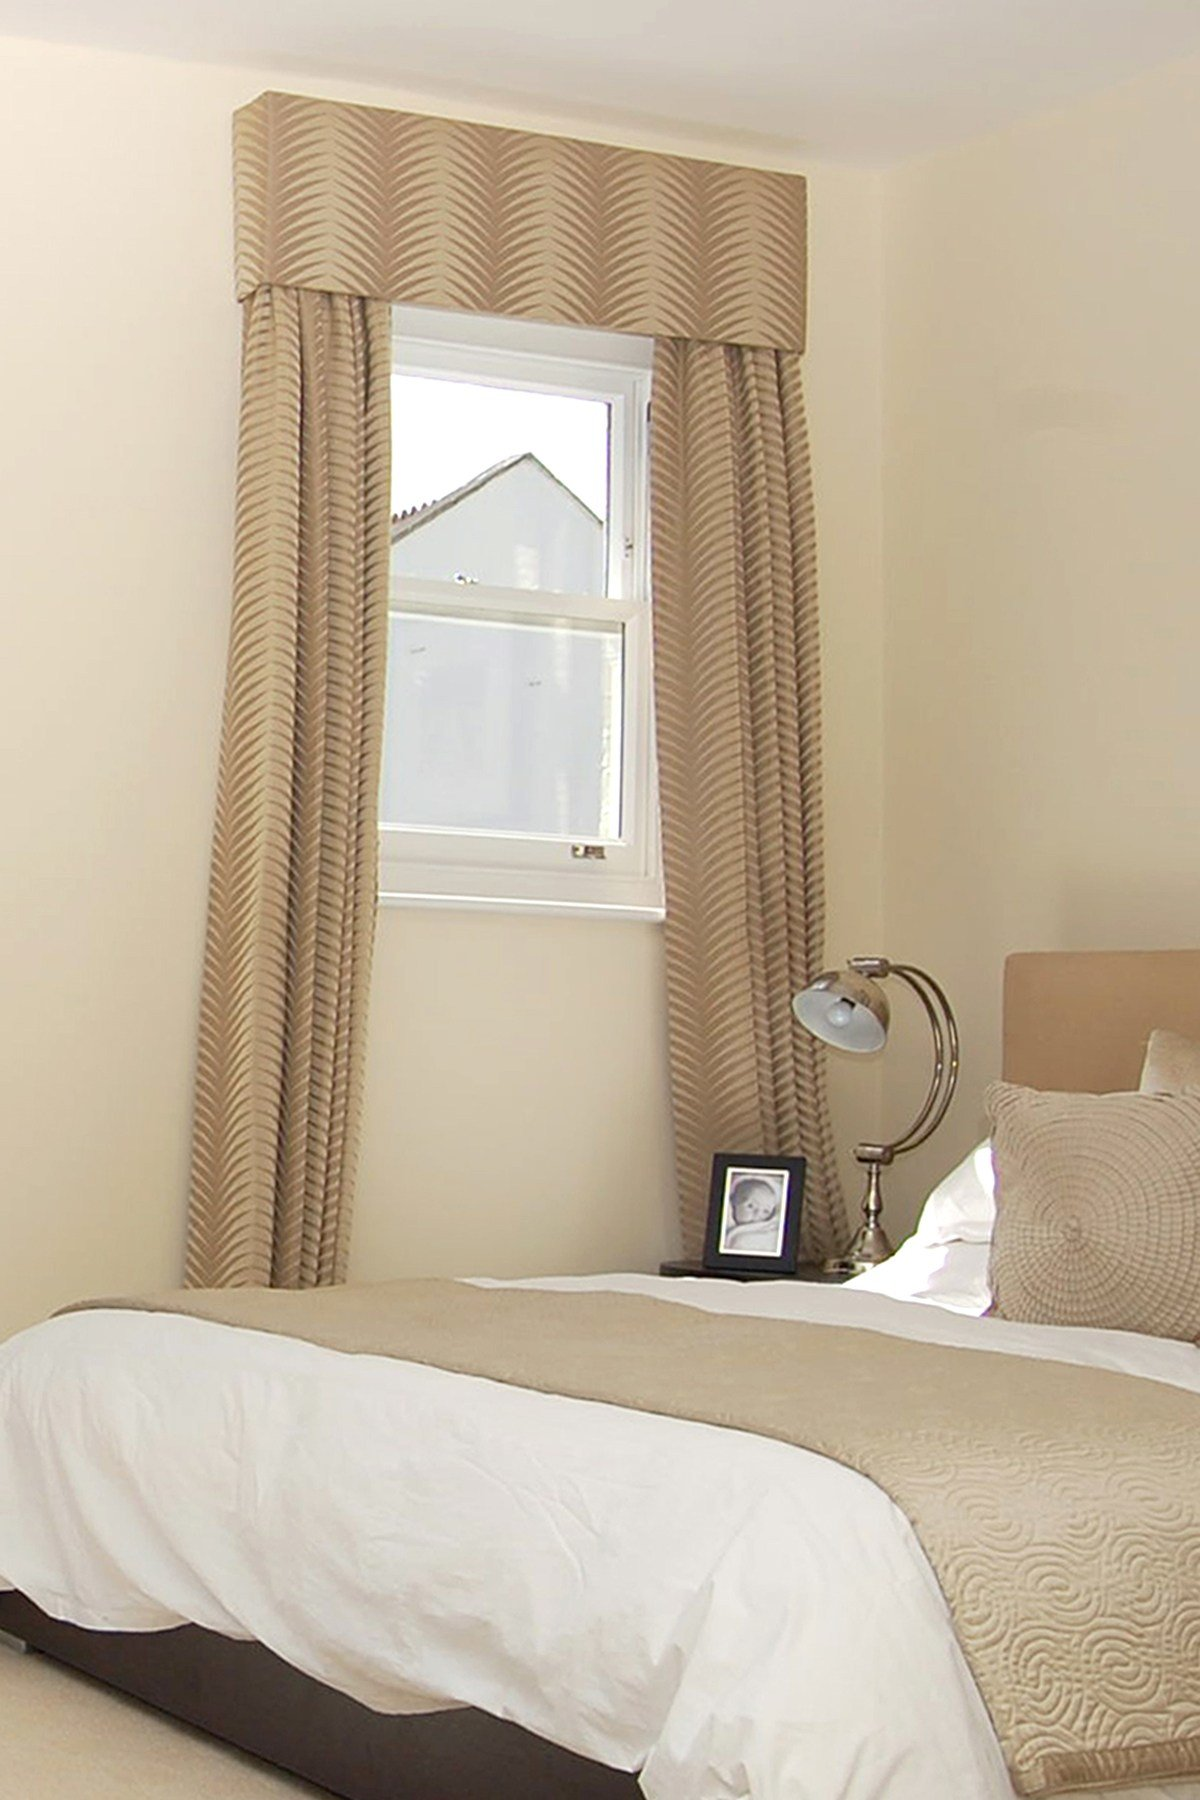 Best Decoration Curtains For Small Window In Bathroom With Contemporary Soft Color Bedroom Curtains With Pictures